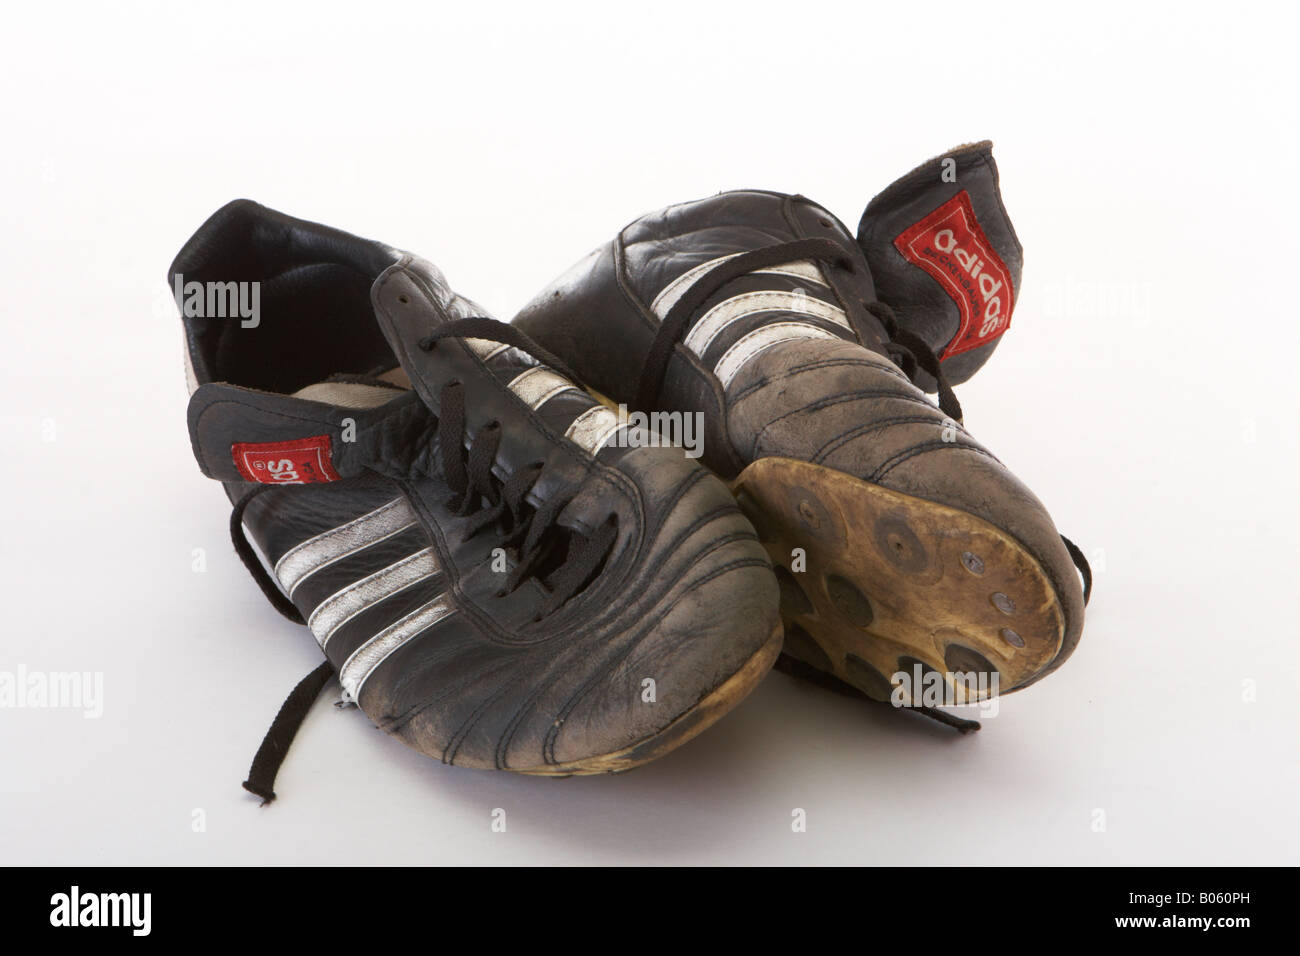 c6b2b14ad Old football boots on the white background Stock Photo: 17342713 - Alamy